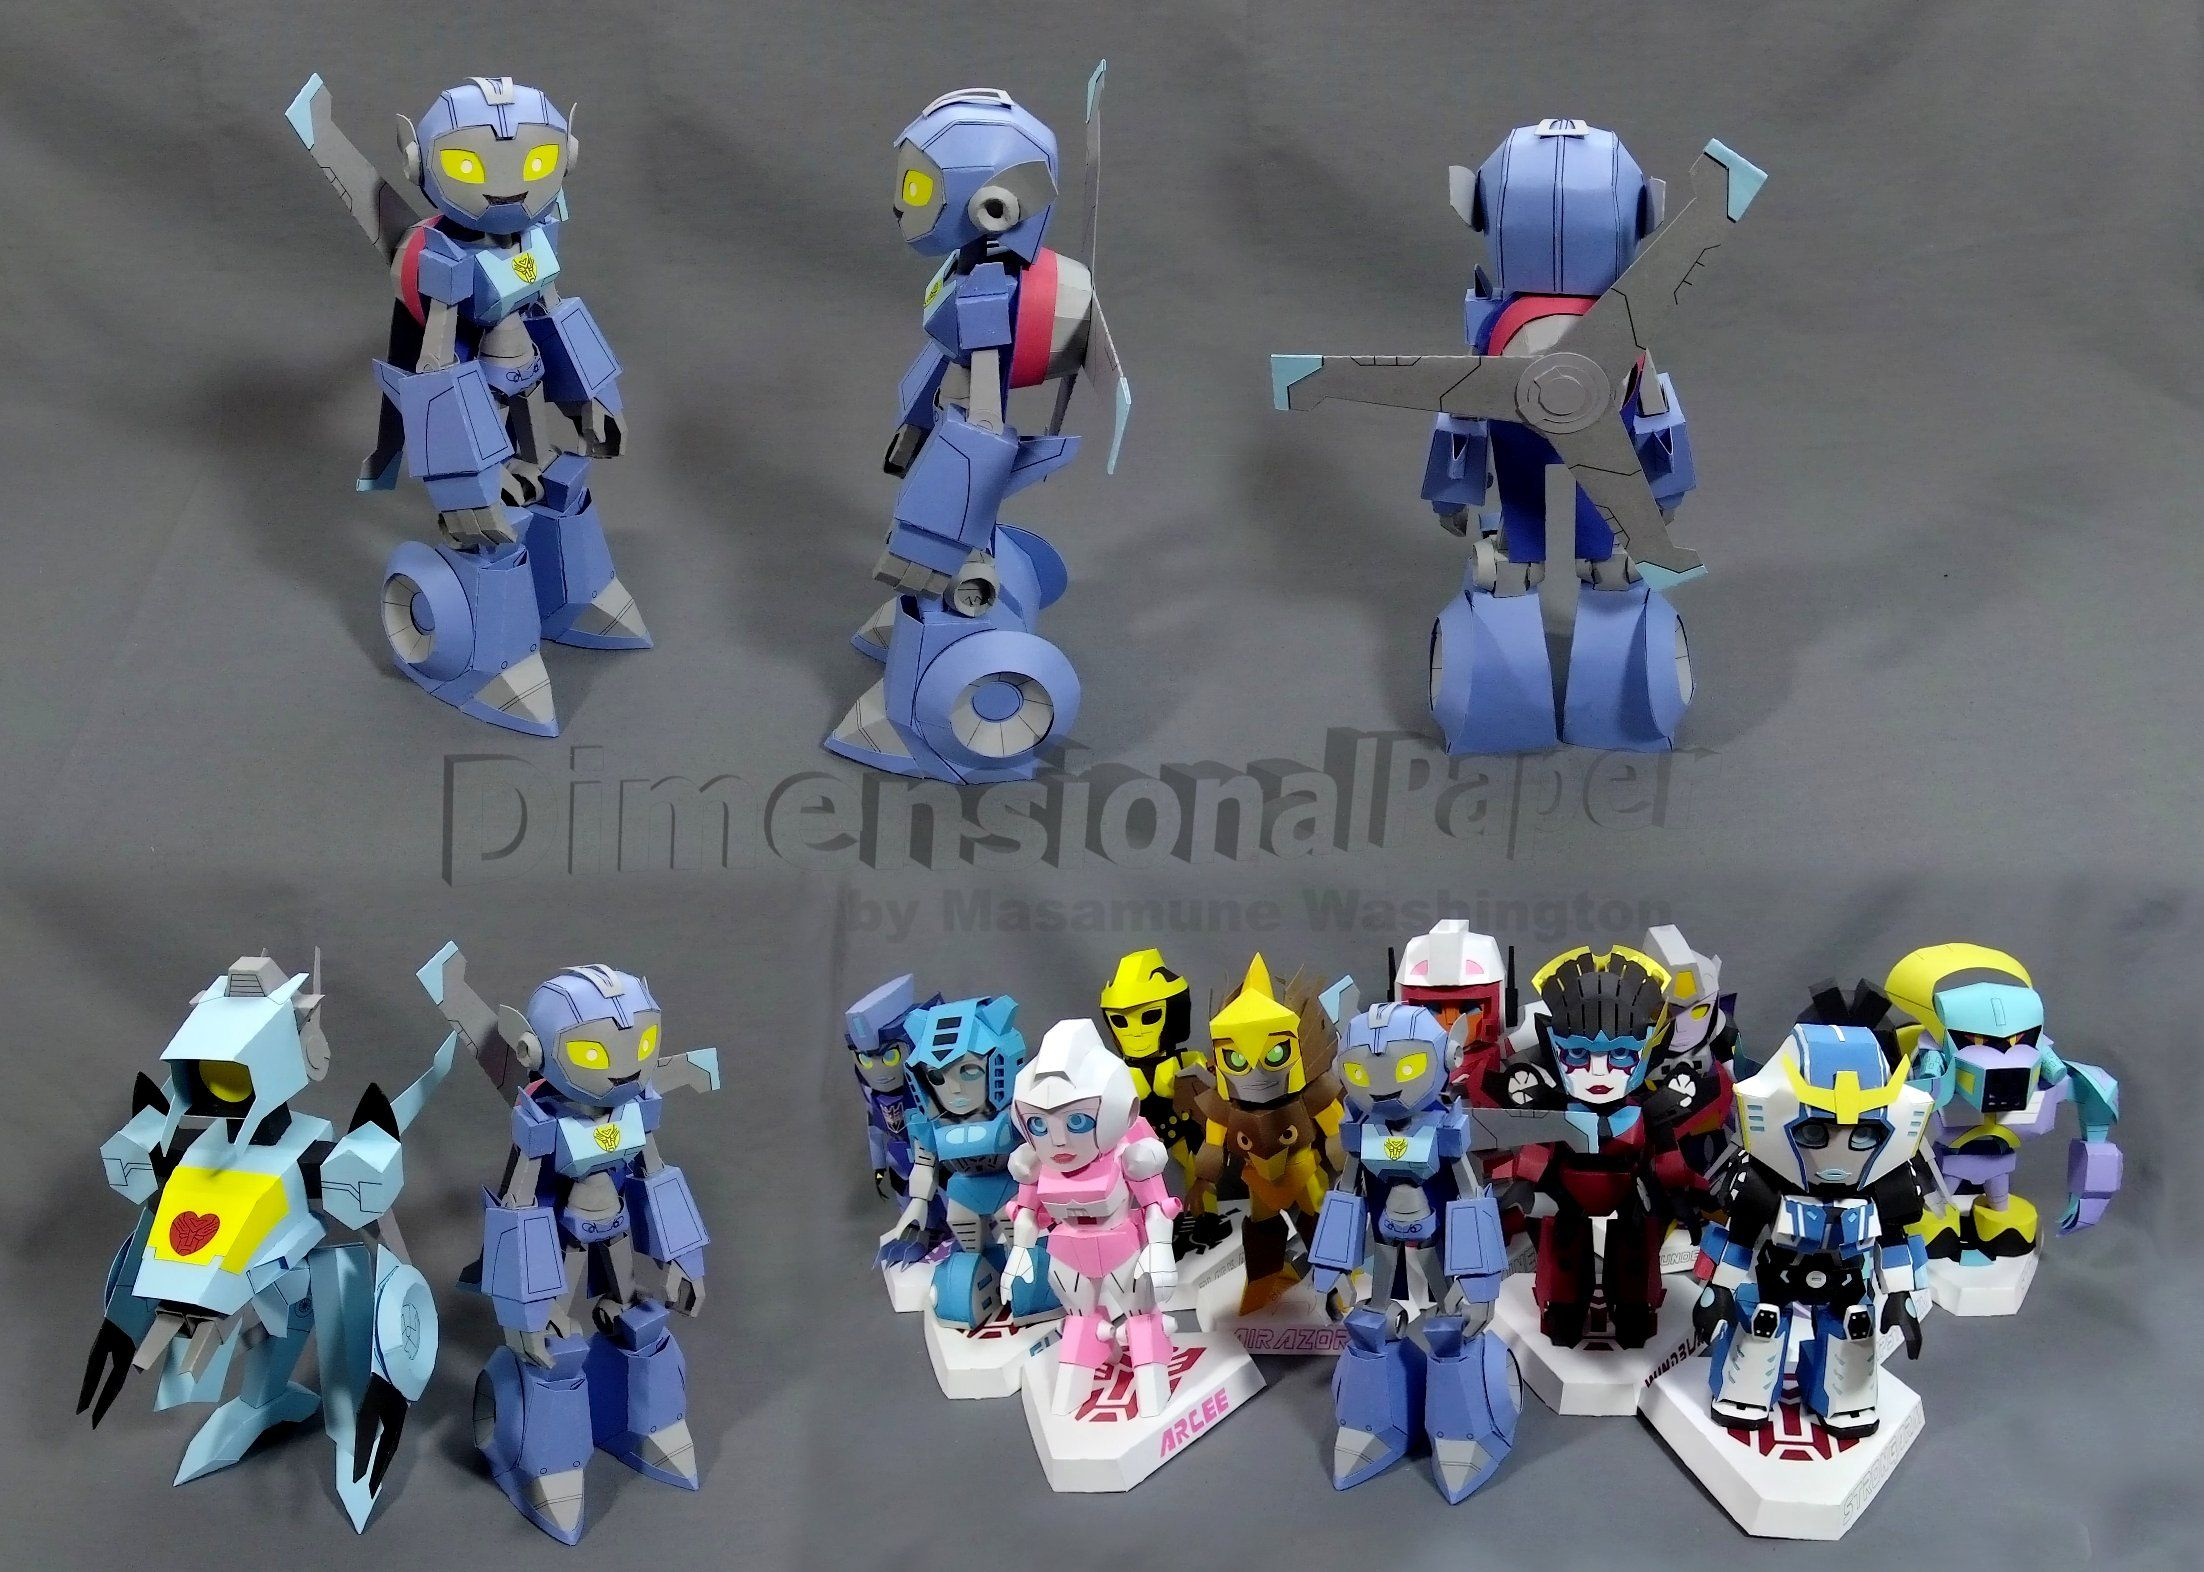 Transformers Rescue Bots Academy Trainee Whirl Cardmodel By Masamune Washington Transformers Rescue Bots Rescue Bots Transformers